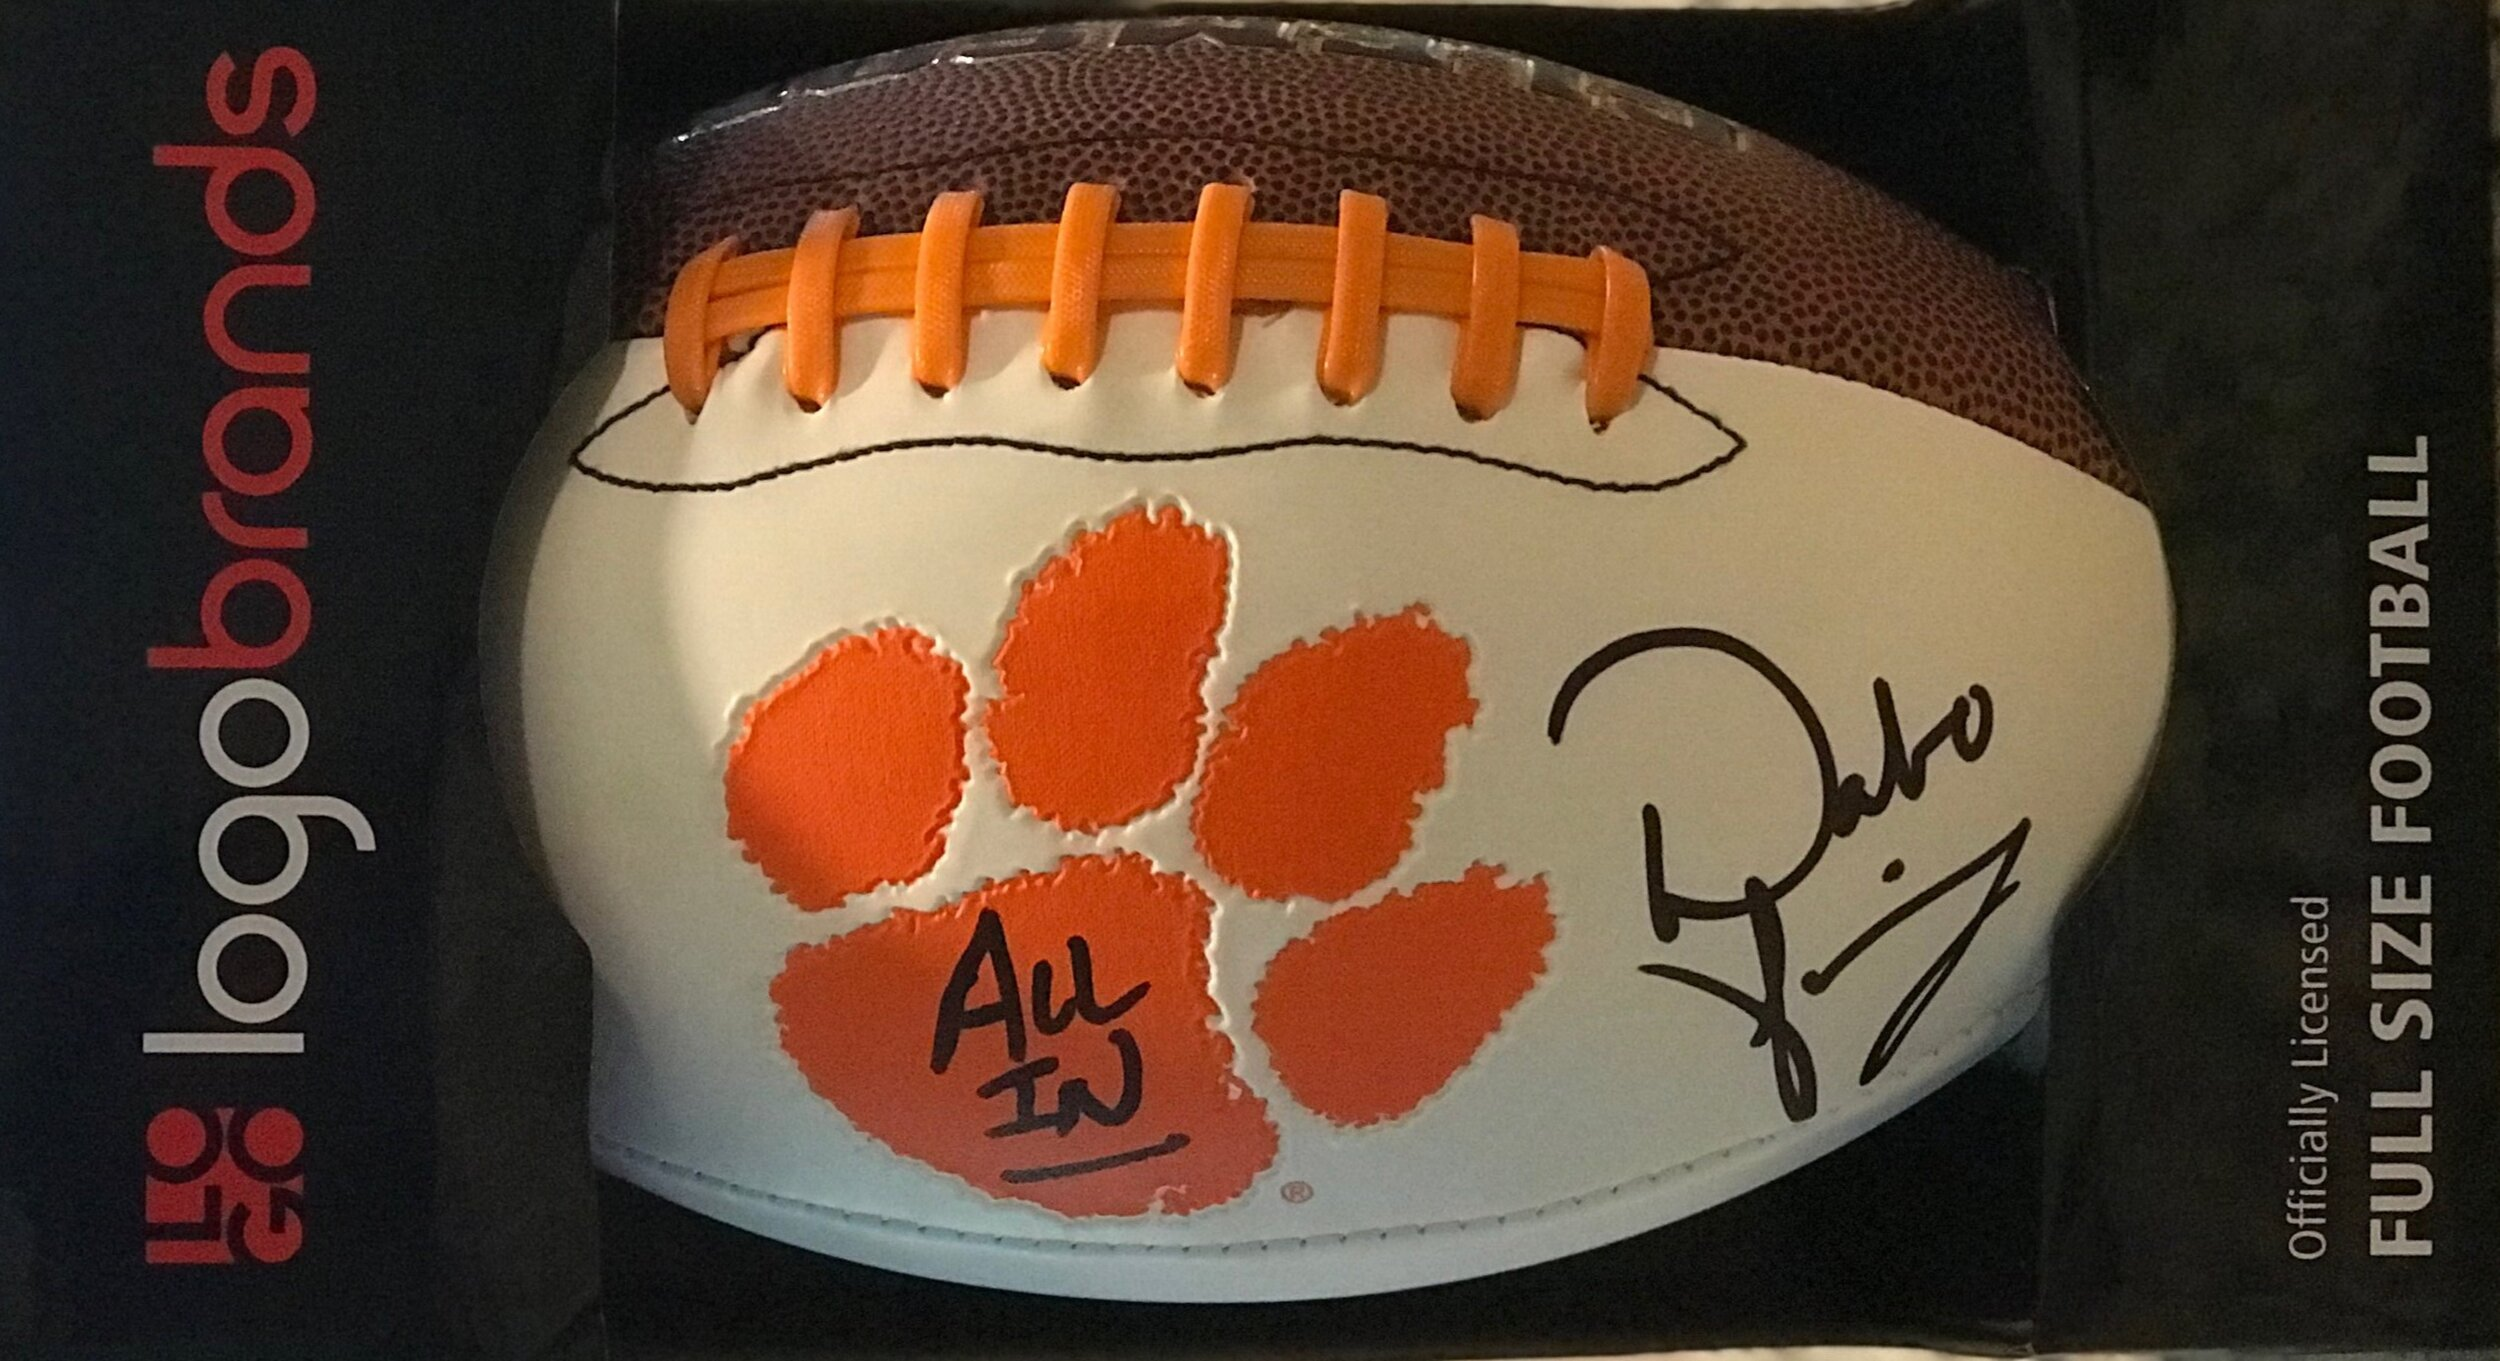 CLEMSON AUTOGRAPHED FOOTBALL   Add this full-size football autographed by Clemson's football coach, Dabo Swinney, to your collection of memorabilia.  DONOR: BV PTA and Clemson Athletics VALUE: Priceless